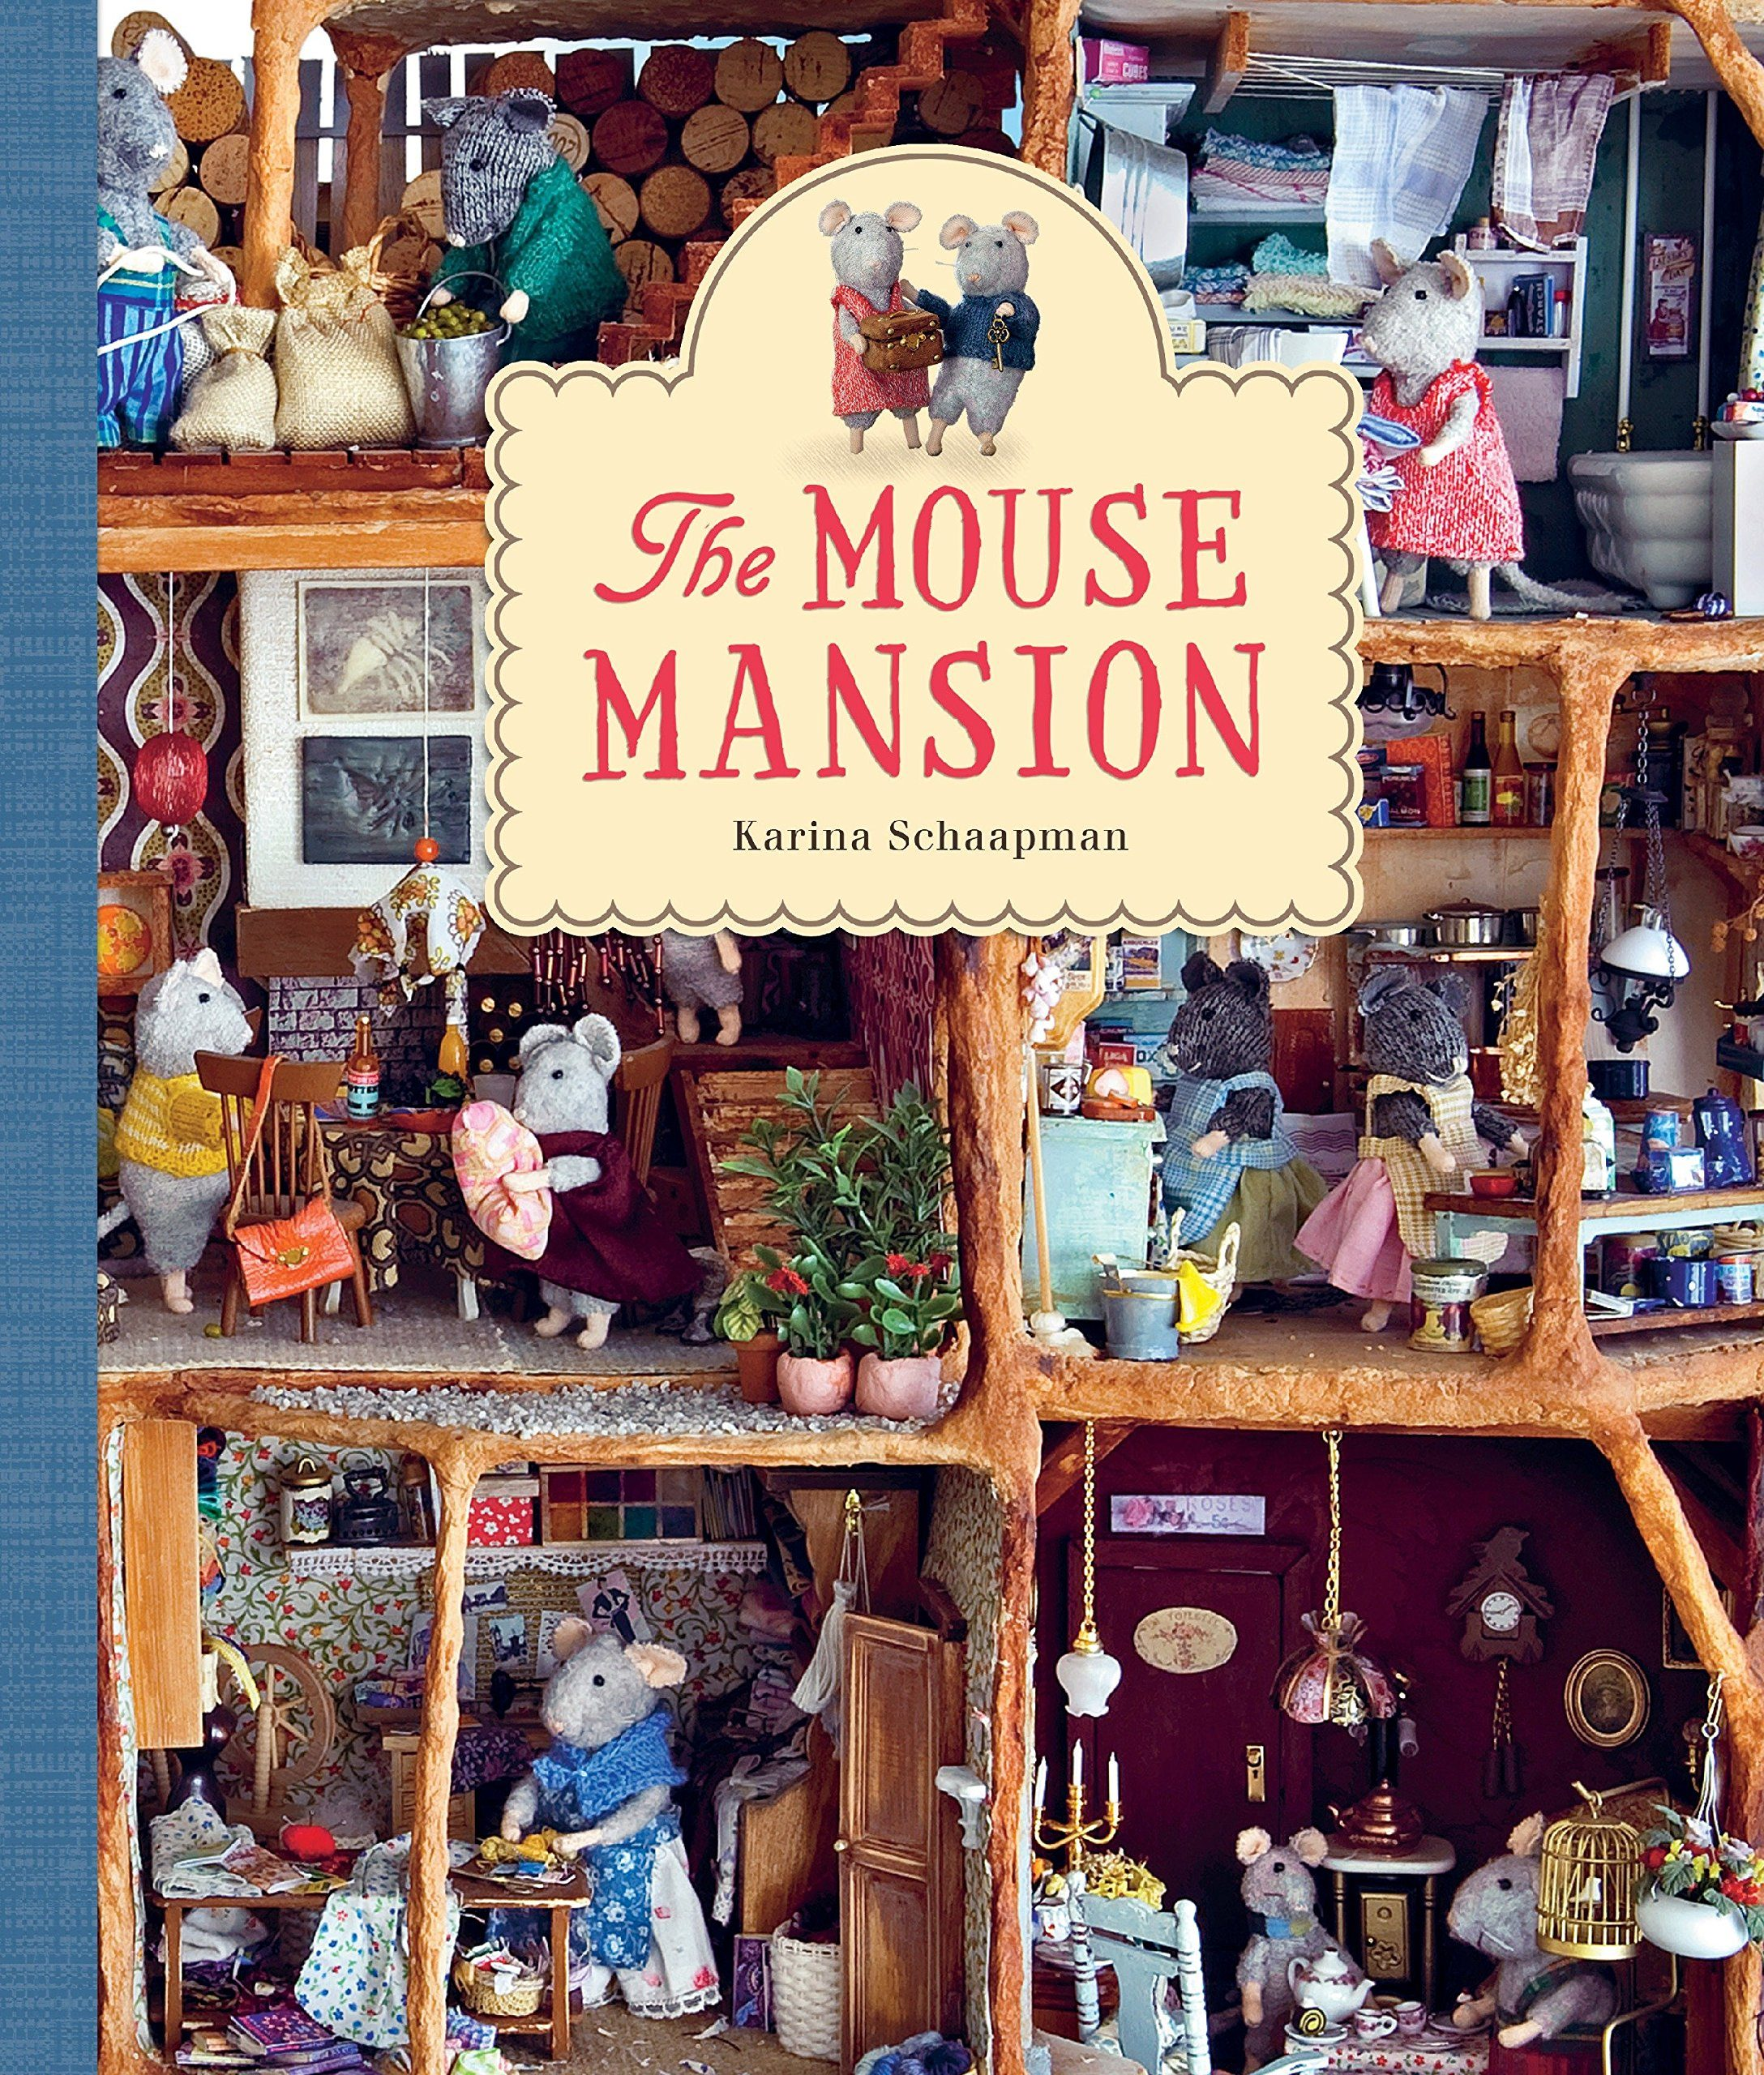 The mouse mansion book